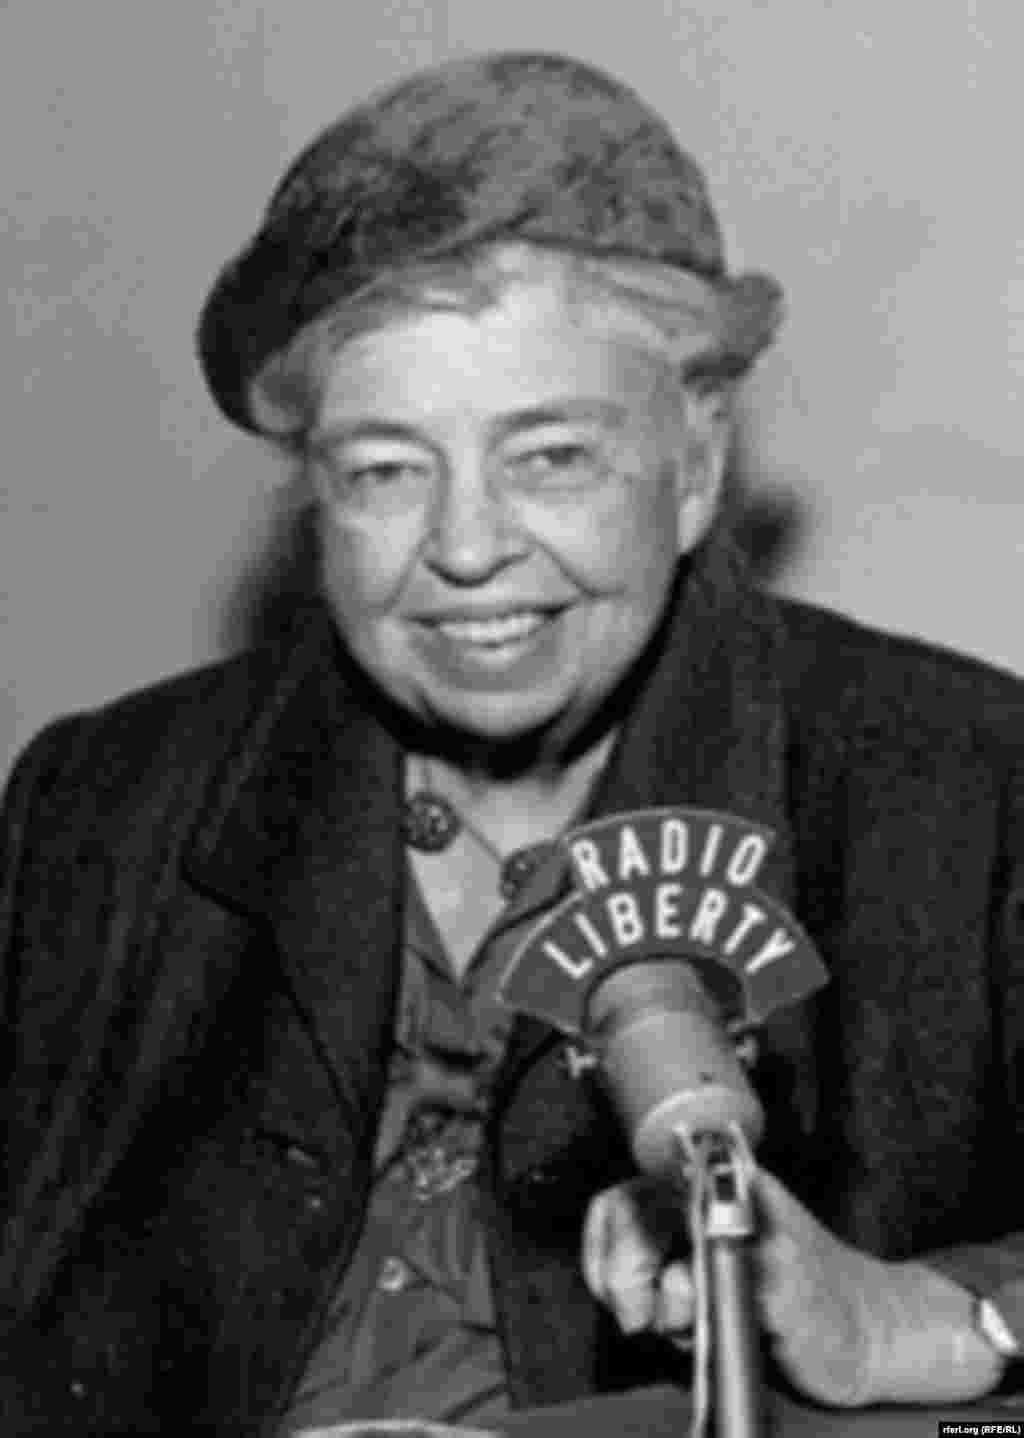 Former U.S. First Lady and Human Rights Champion Eleanor Roosevelt sits down for an interview in the late 1950s - Former U.S. First Lady and Human Rights Champion Eleanor Roosevelt sits down for an interview in the late 1950s with Radio Liberty.